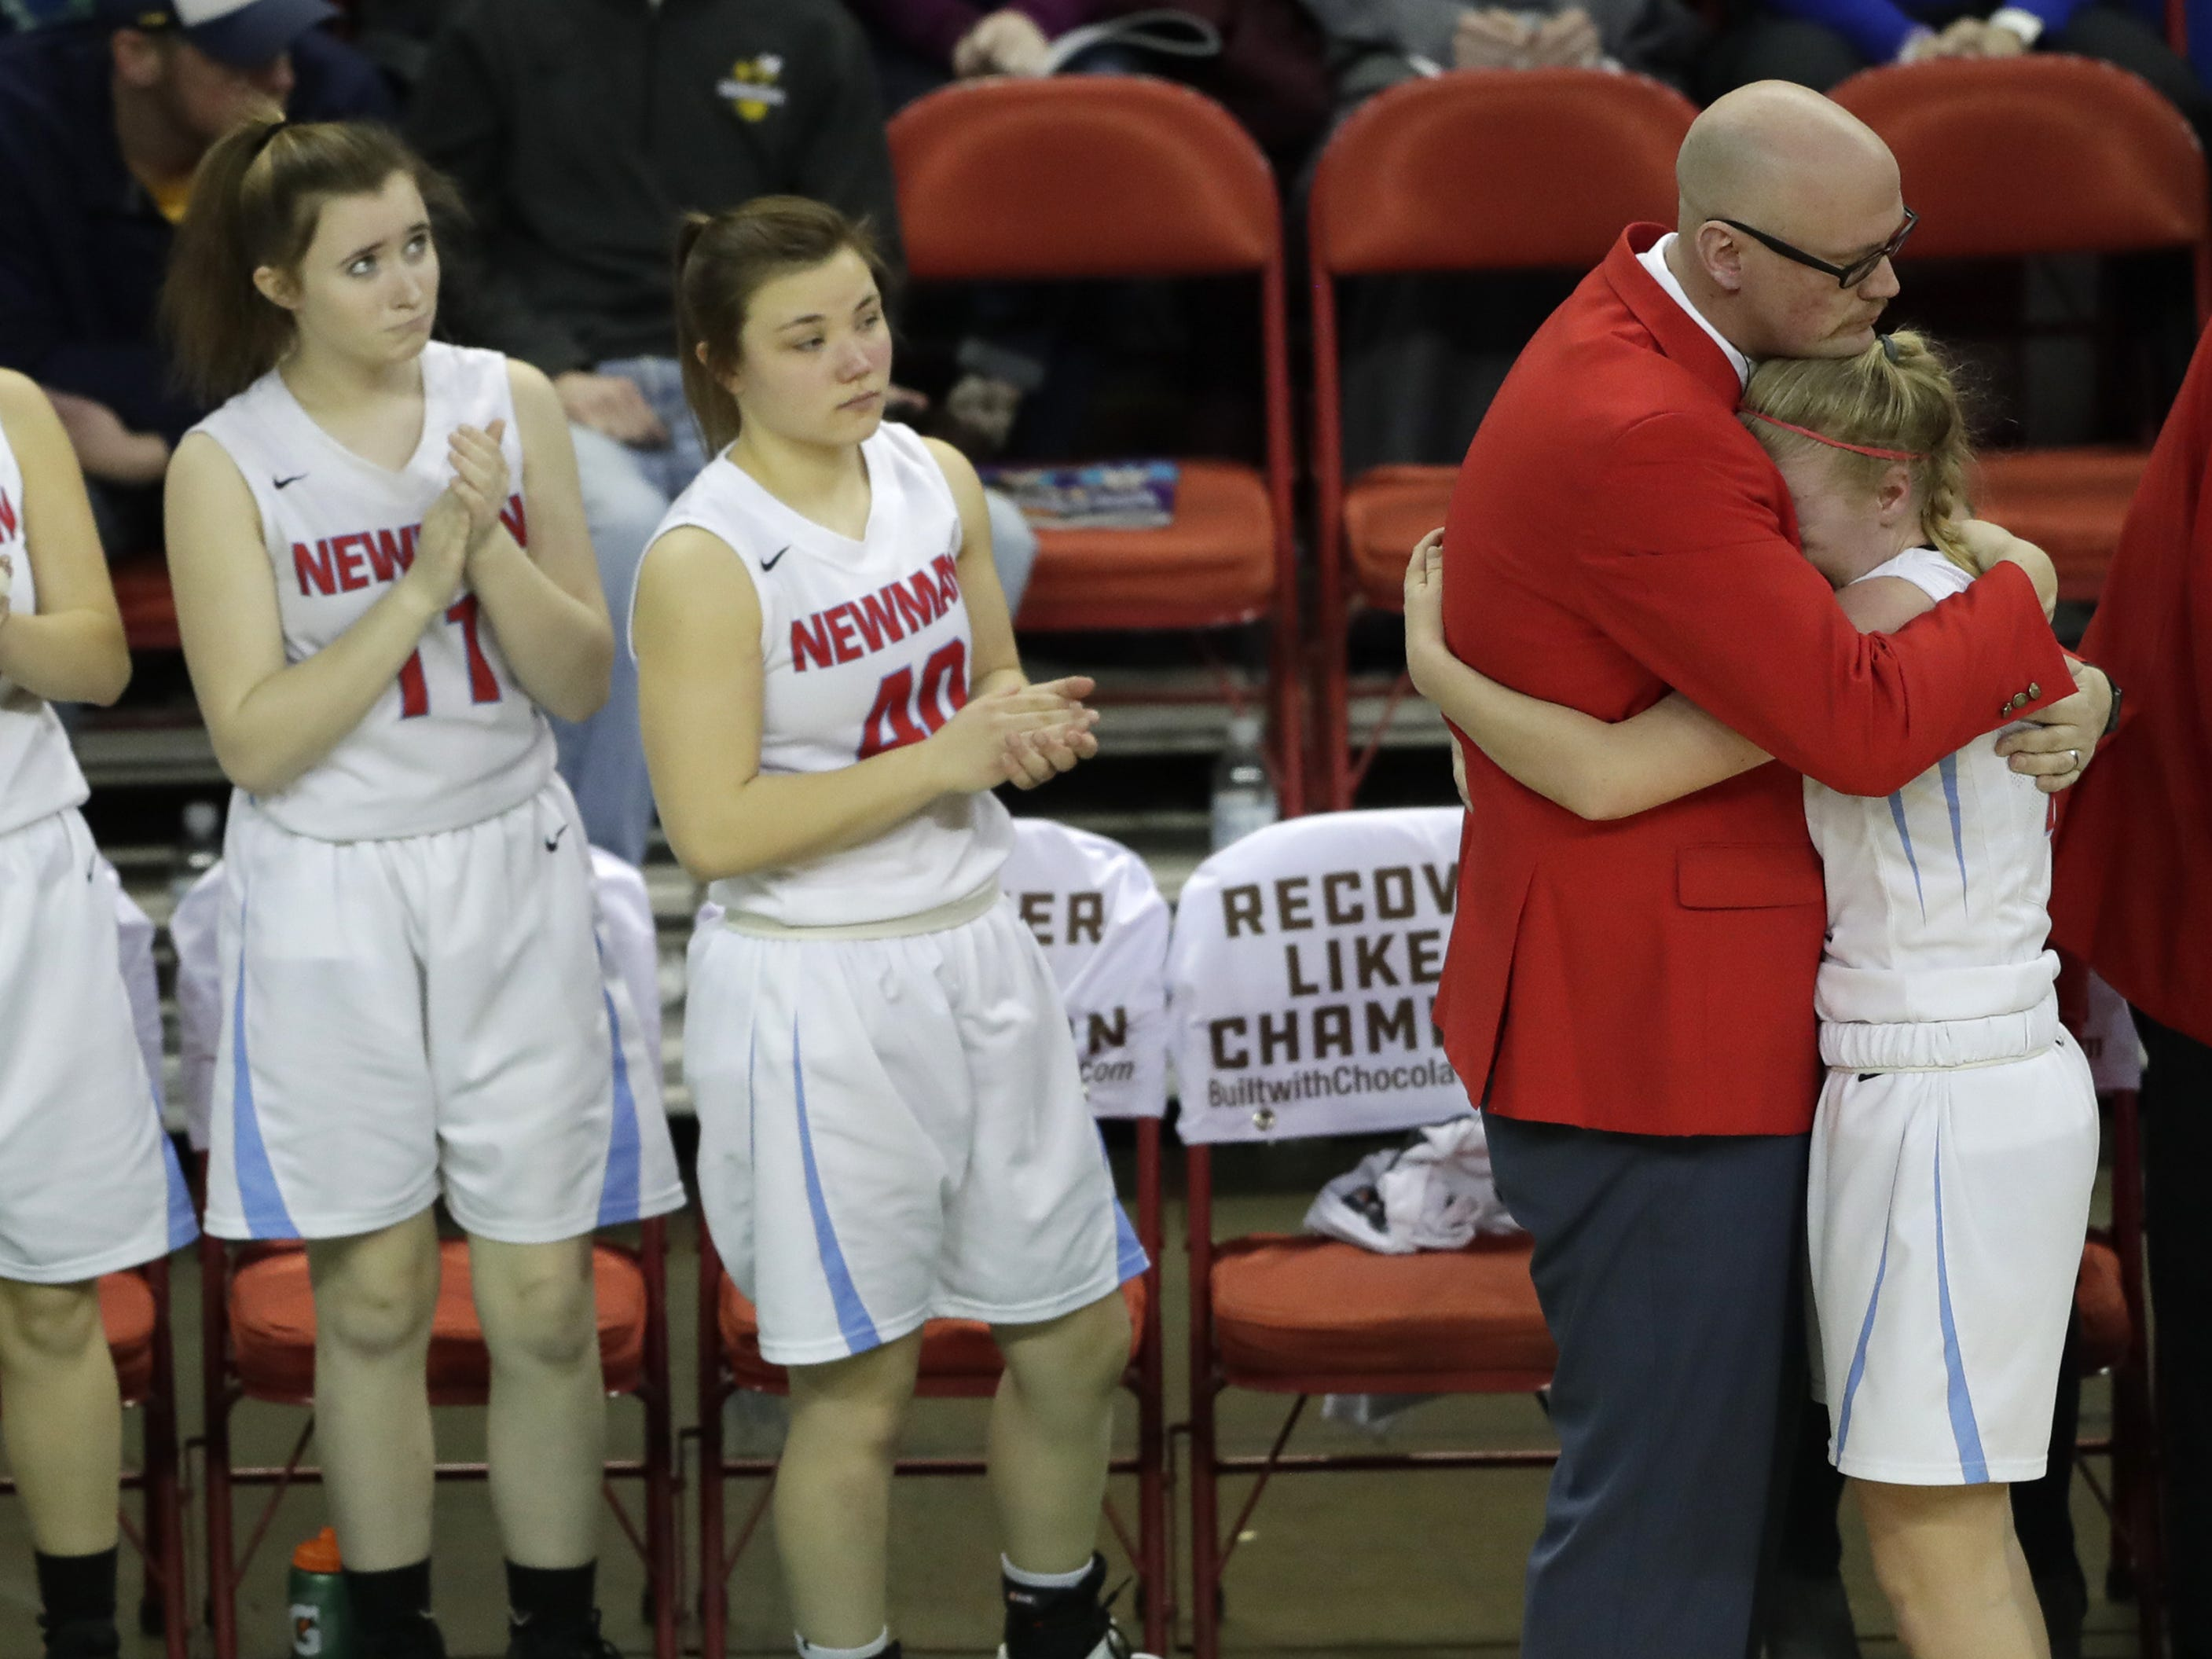 Wausau Newman Catholic's Mackenzie Krach (12) gets a hug from coach Jason Vanden Elzen as she substituted late in the game during their Division 5 semifinal game at the WIAA girls state basketball tournament Friday, March 8, 2019, at the Resch Center in Ashwaubenon, Wis.  Dan Powers/USA TODAY NETWORK-Wisconsin